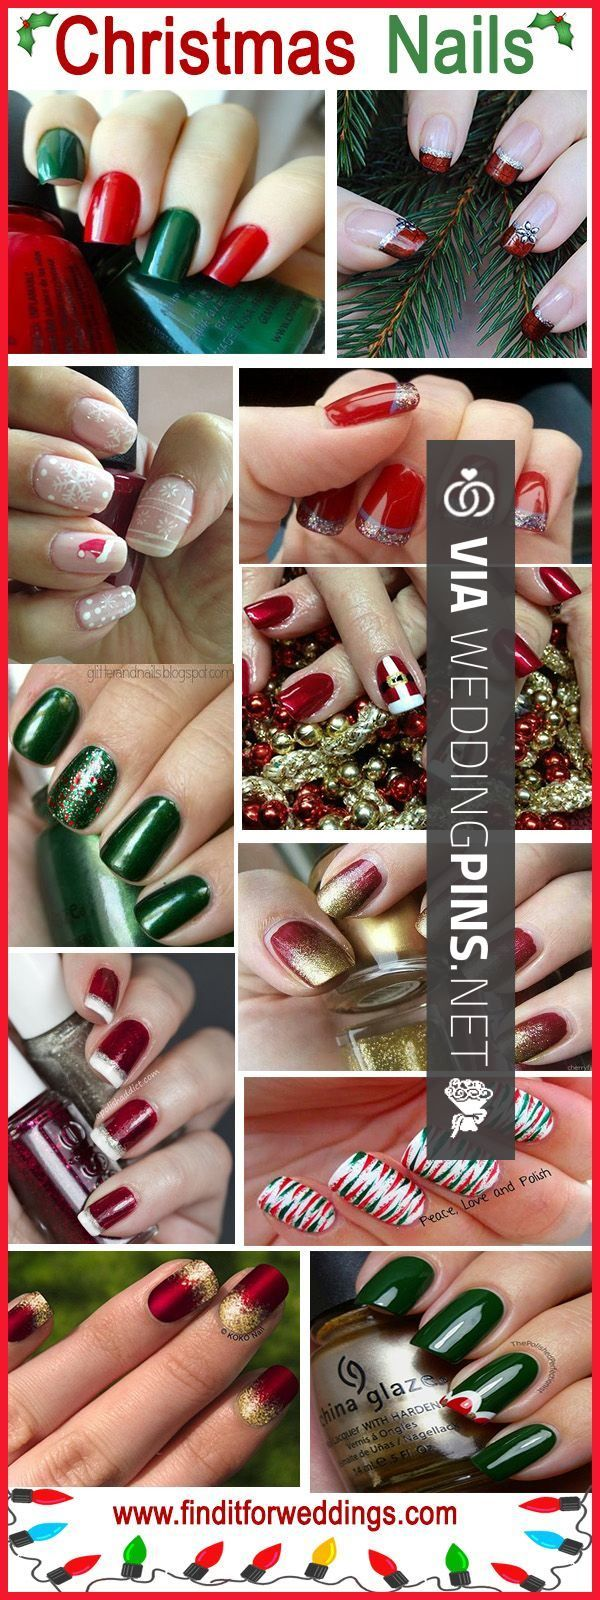 Amazing -    CHECK OUT MORE TO DIE FOR PICS OF TASTY Wedding Nails 2016 OVER AT…